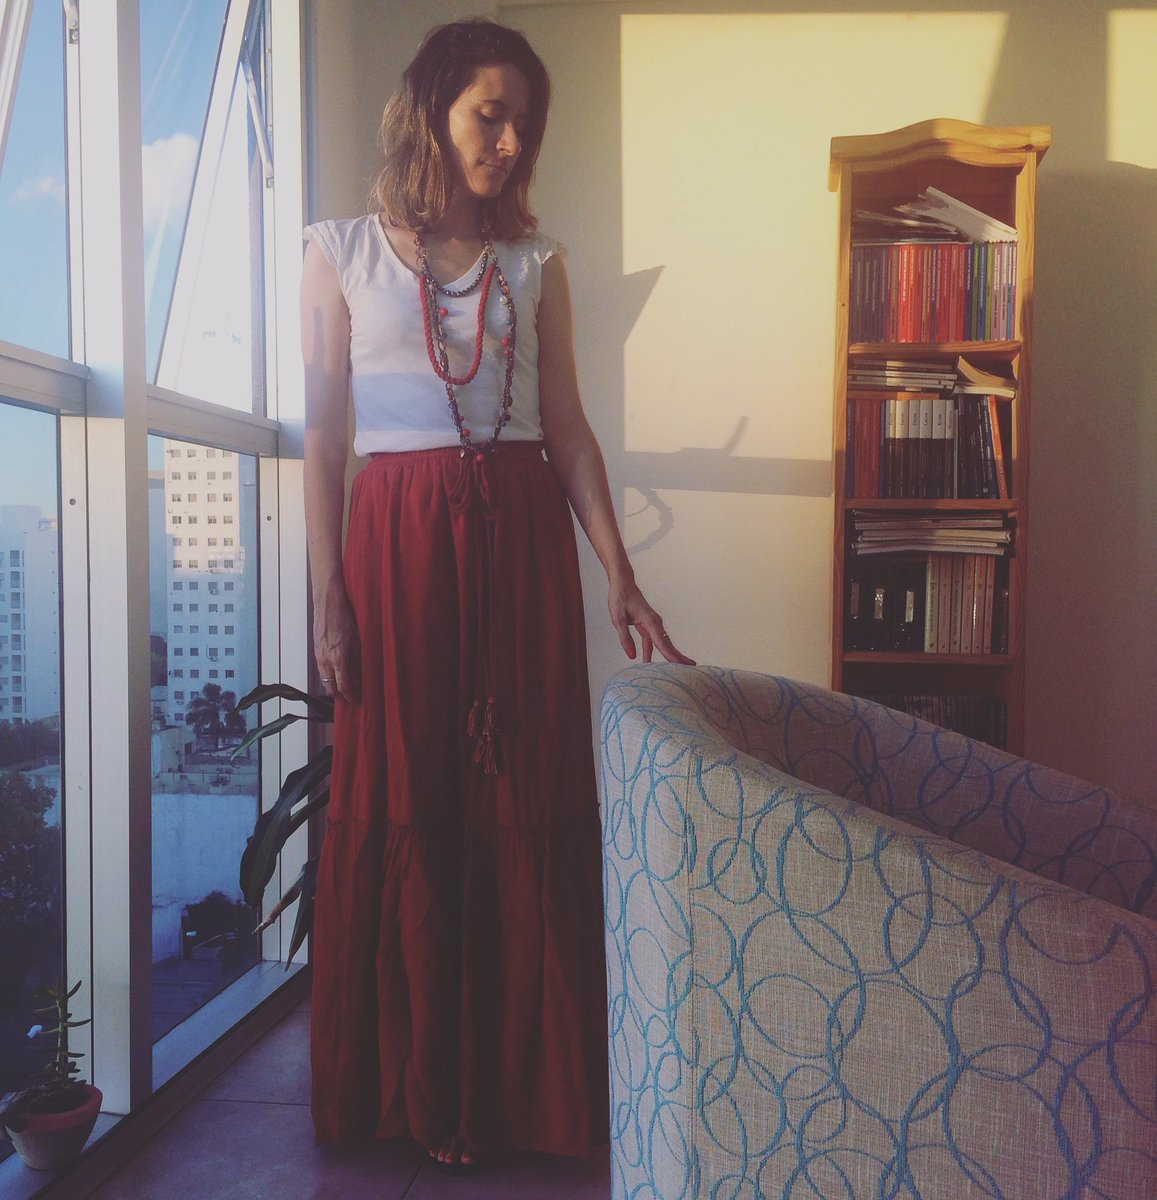 #look de ayer con aires de hippie chic #fashionblogger #fashionlook #style #OOTD #outfit #moda #hippiechic<br>http://pic.twitter.com/VlKHHFoiPL